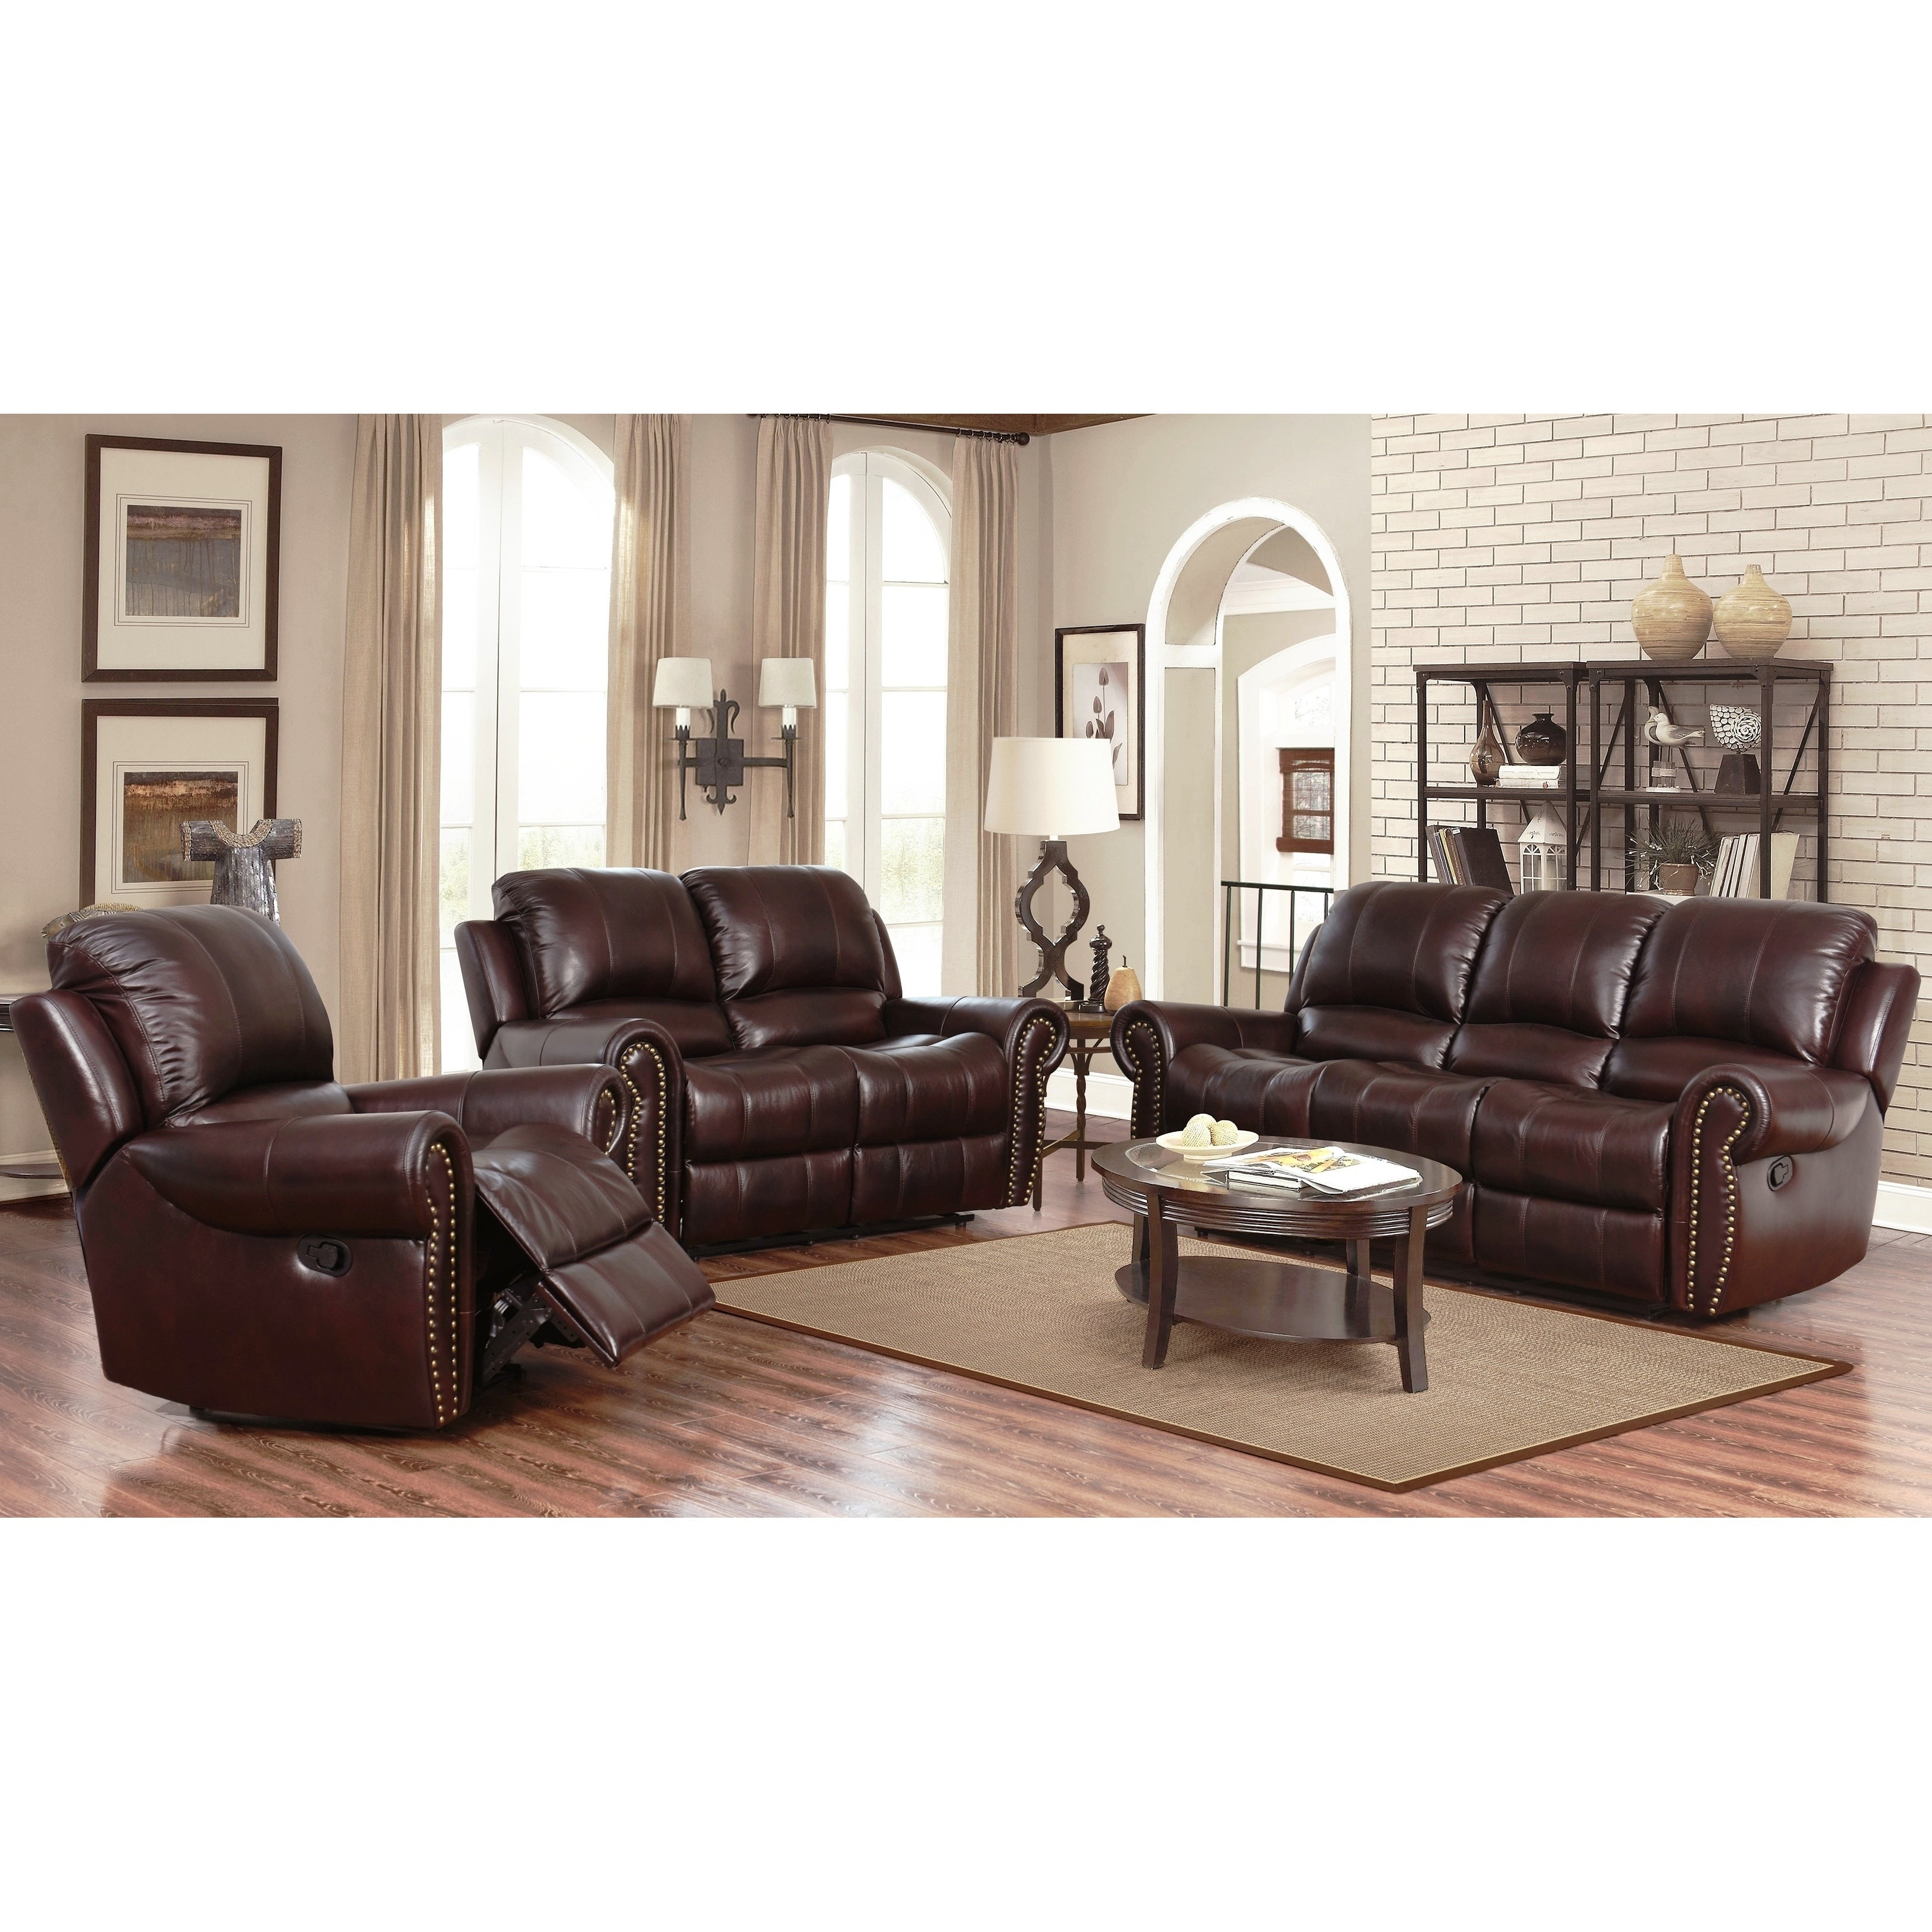 Shop Abson Broadway Top Grain Leather Reclining 3 Piece Living throughout 11 Genius Tricks of How to Build 3 Piece Leather Living Room Set